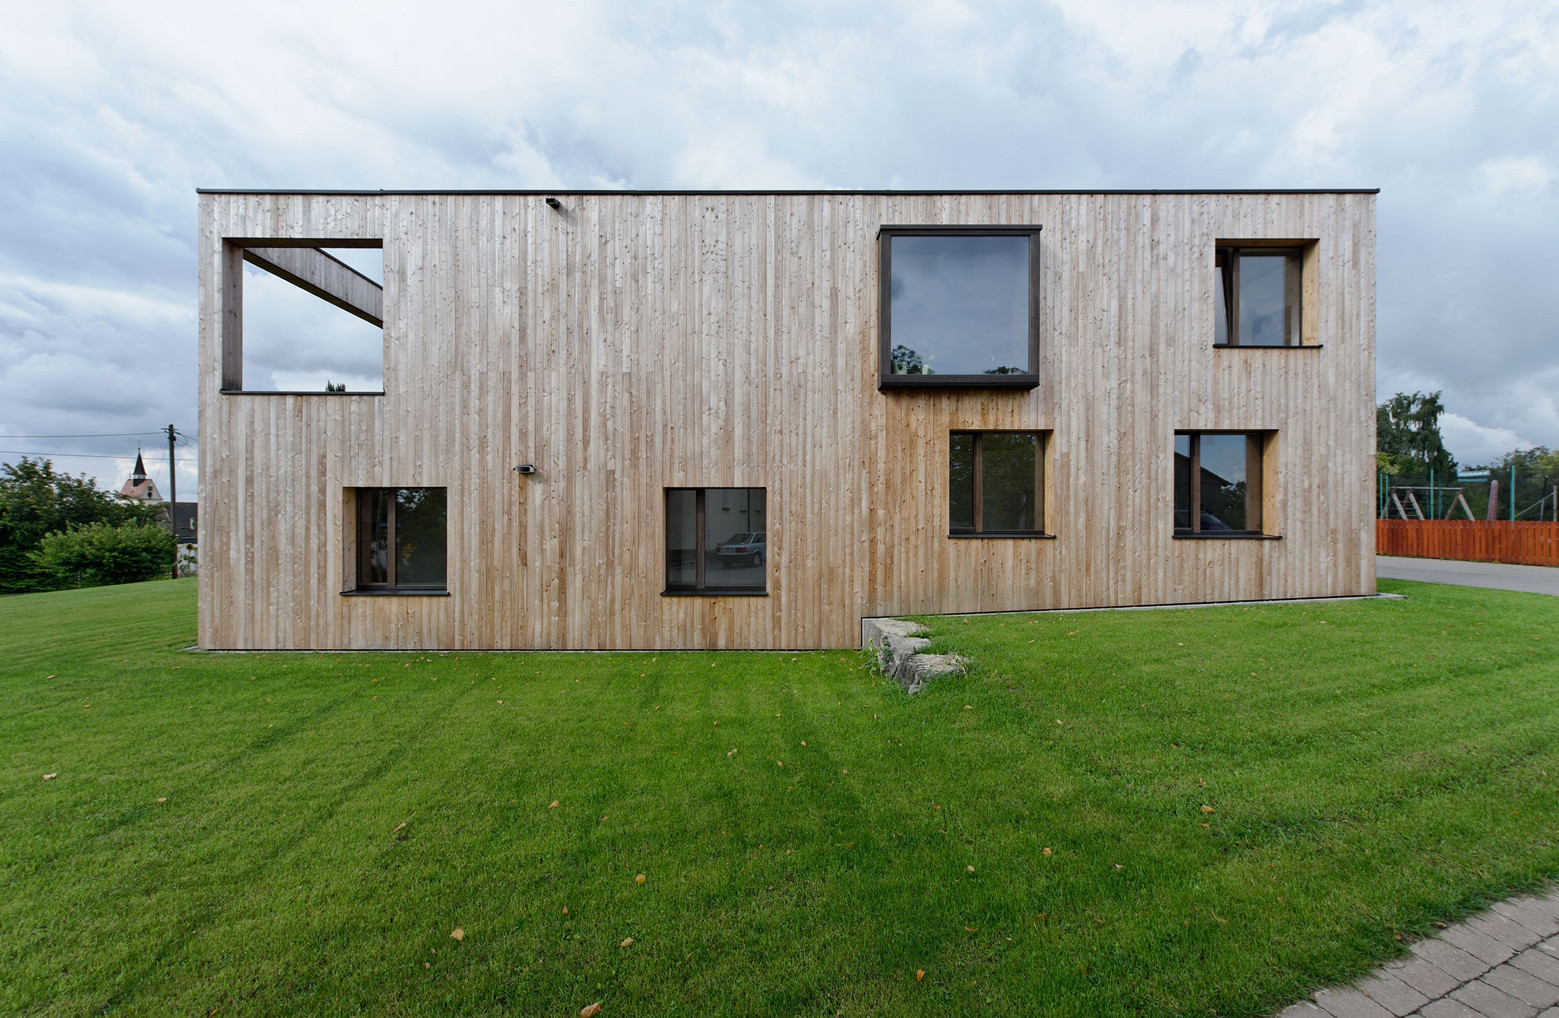 House A  / Bernd Zimmermann Architekten, © Valentin Wormbs